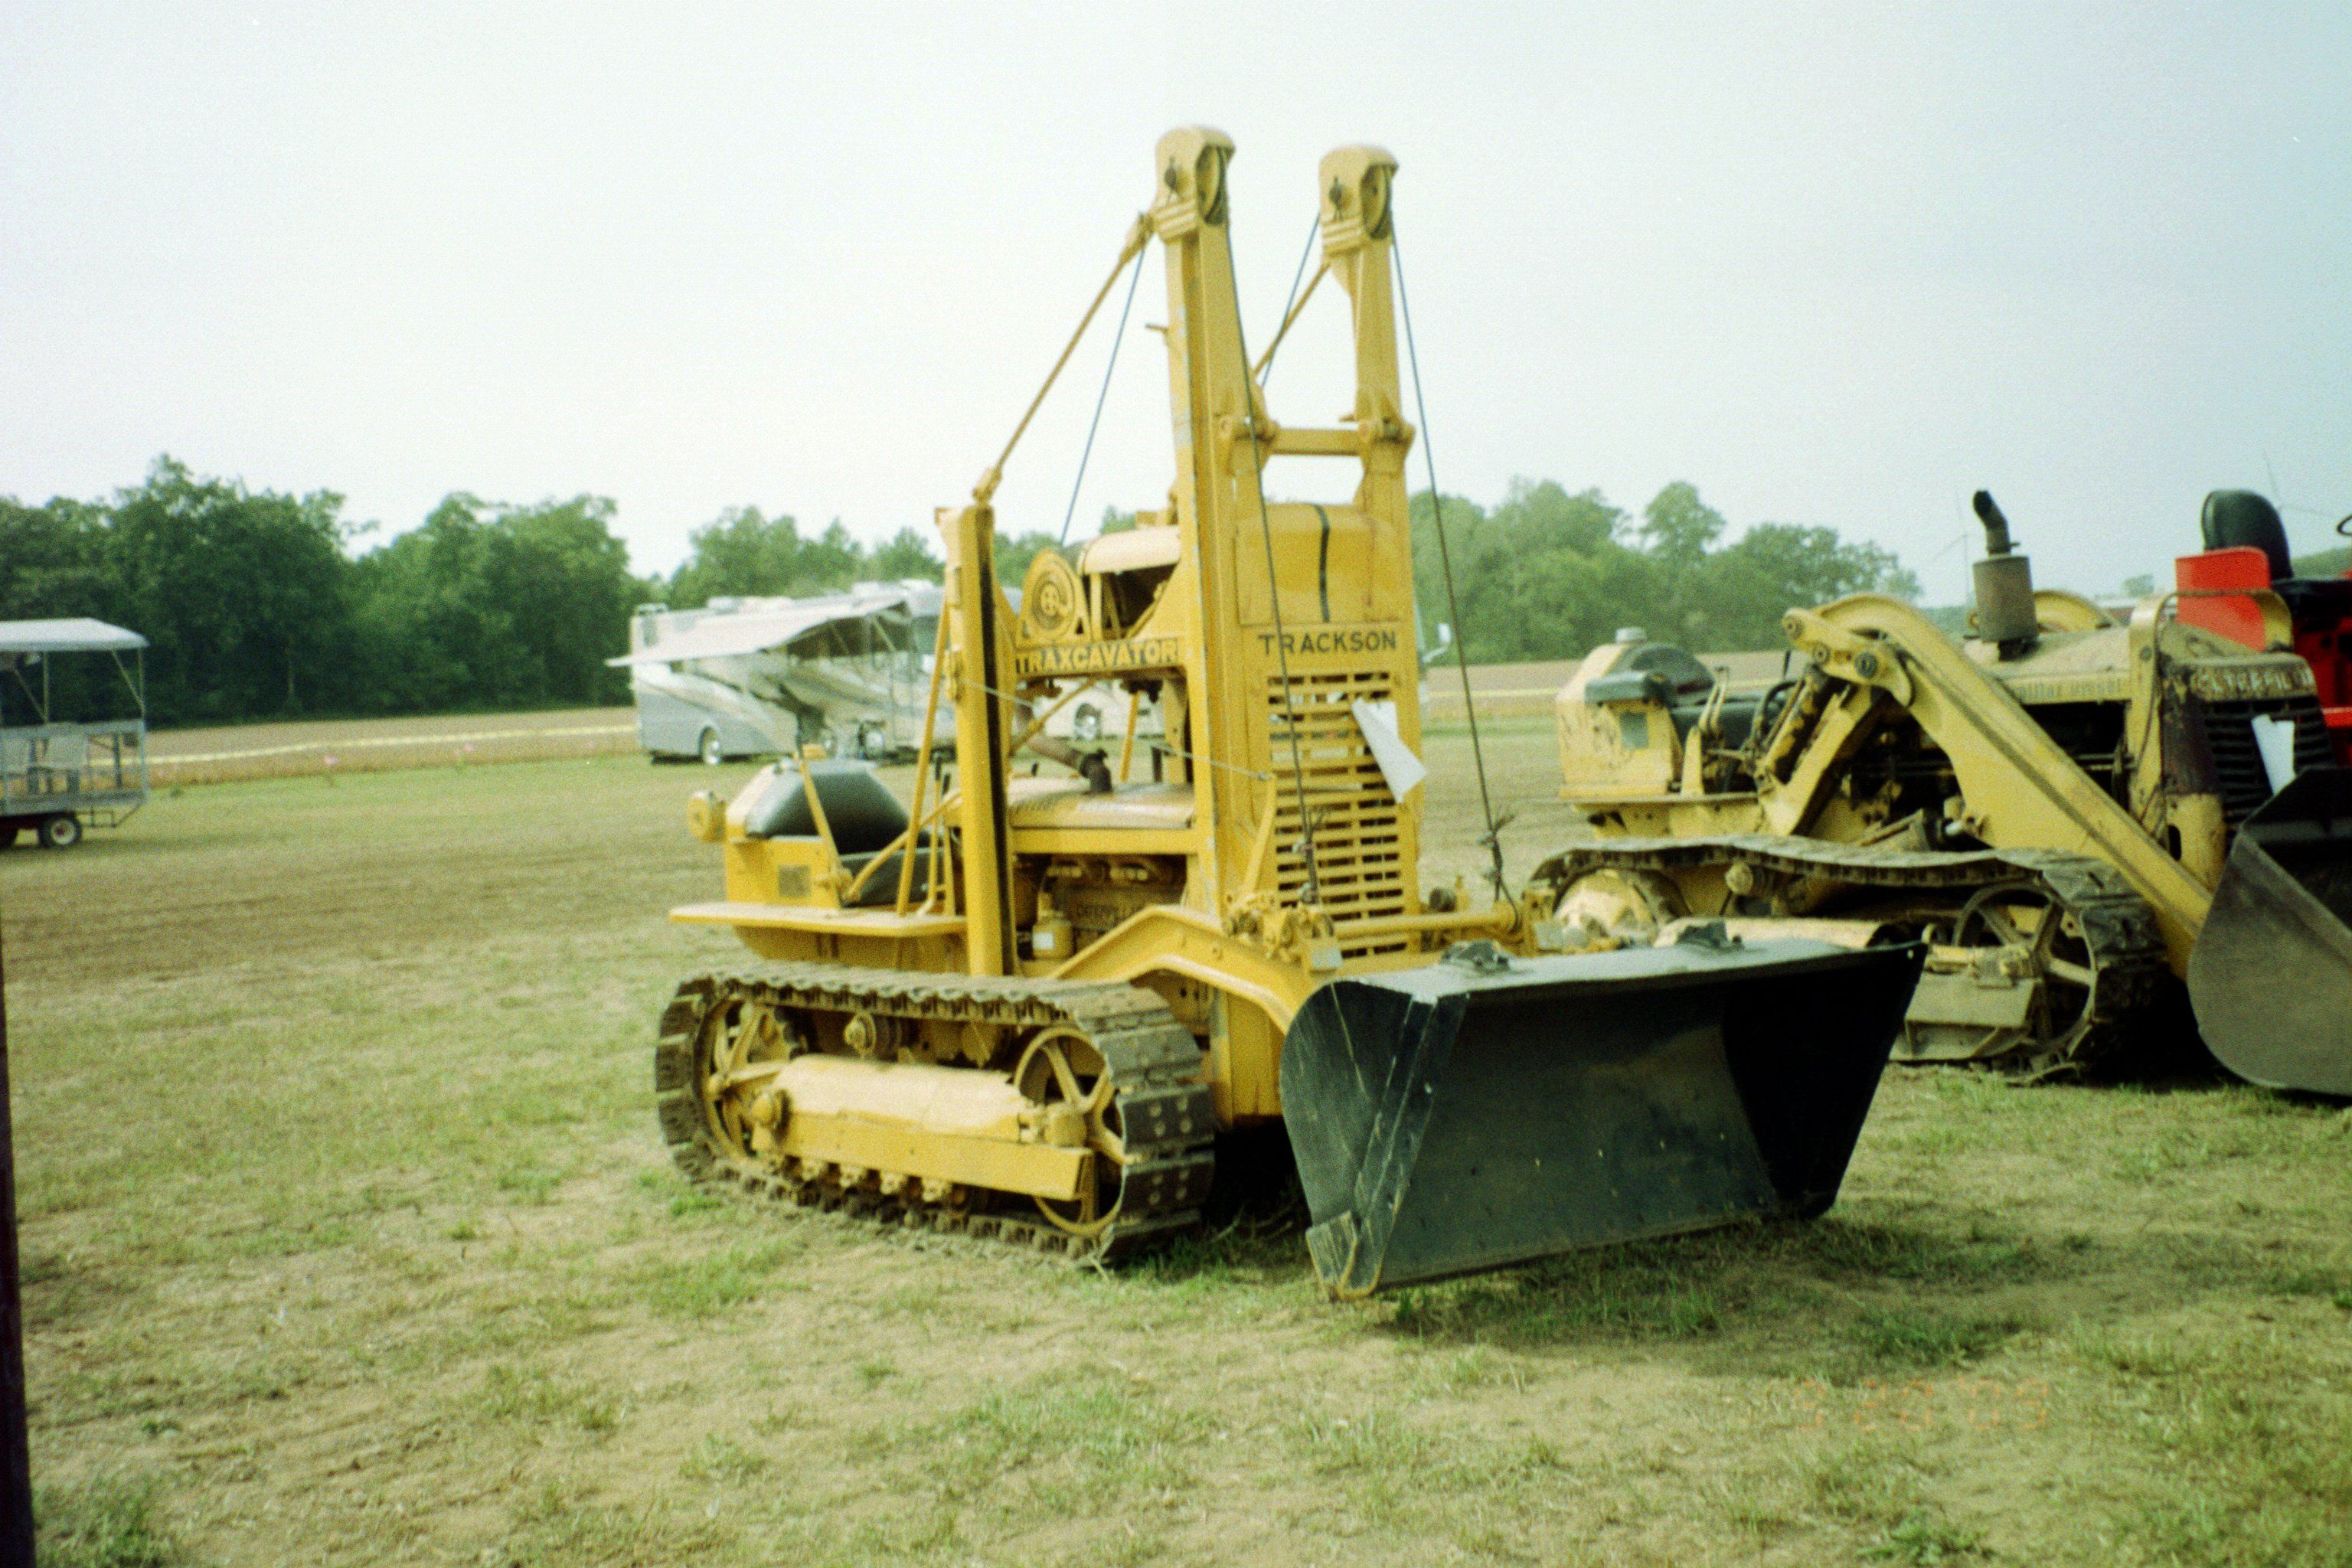 Cat D2 with Trackson bucket loader | Caterpillar | Crawler tractor